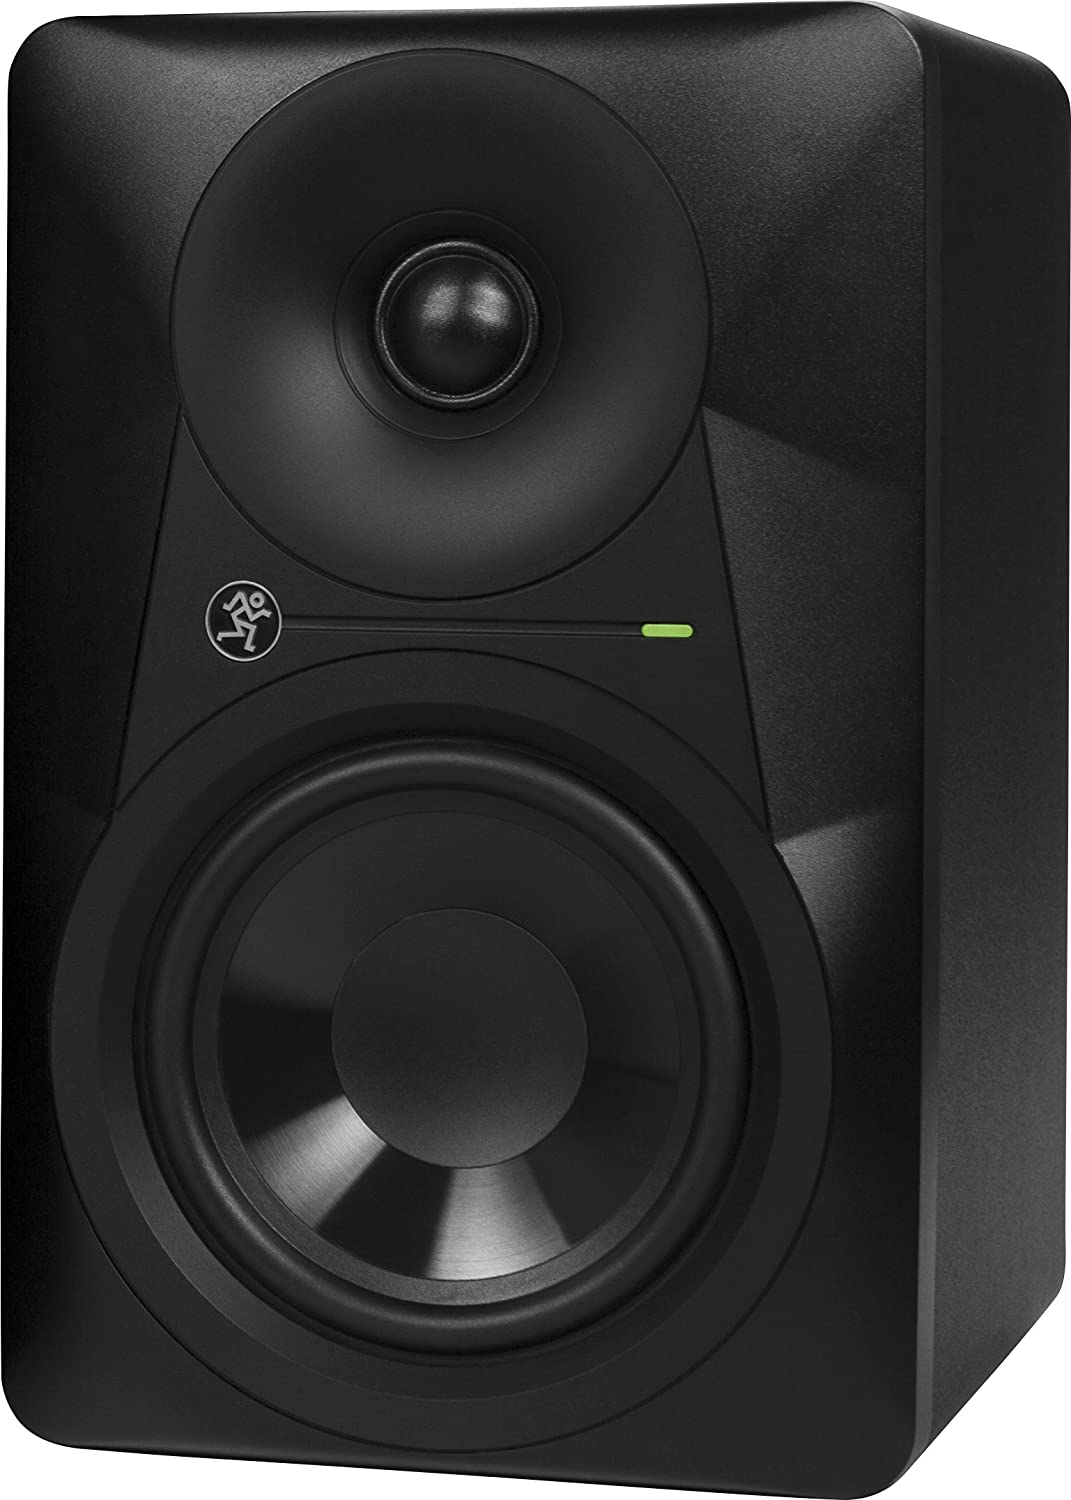 Mackie MR624-6.5 Powered Studio Monitor Loud Technologies Inc.